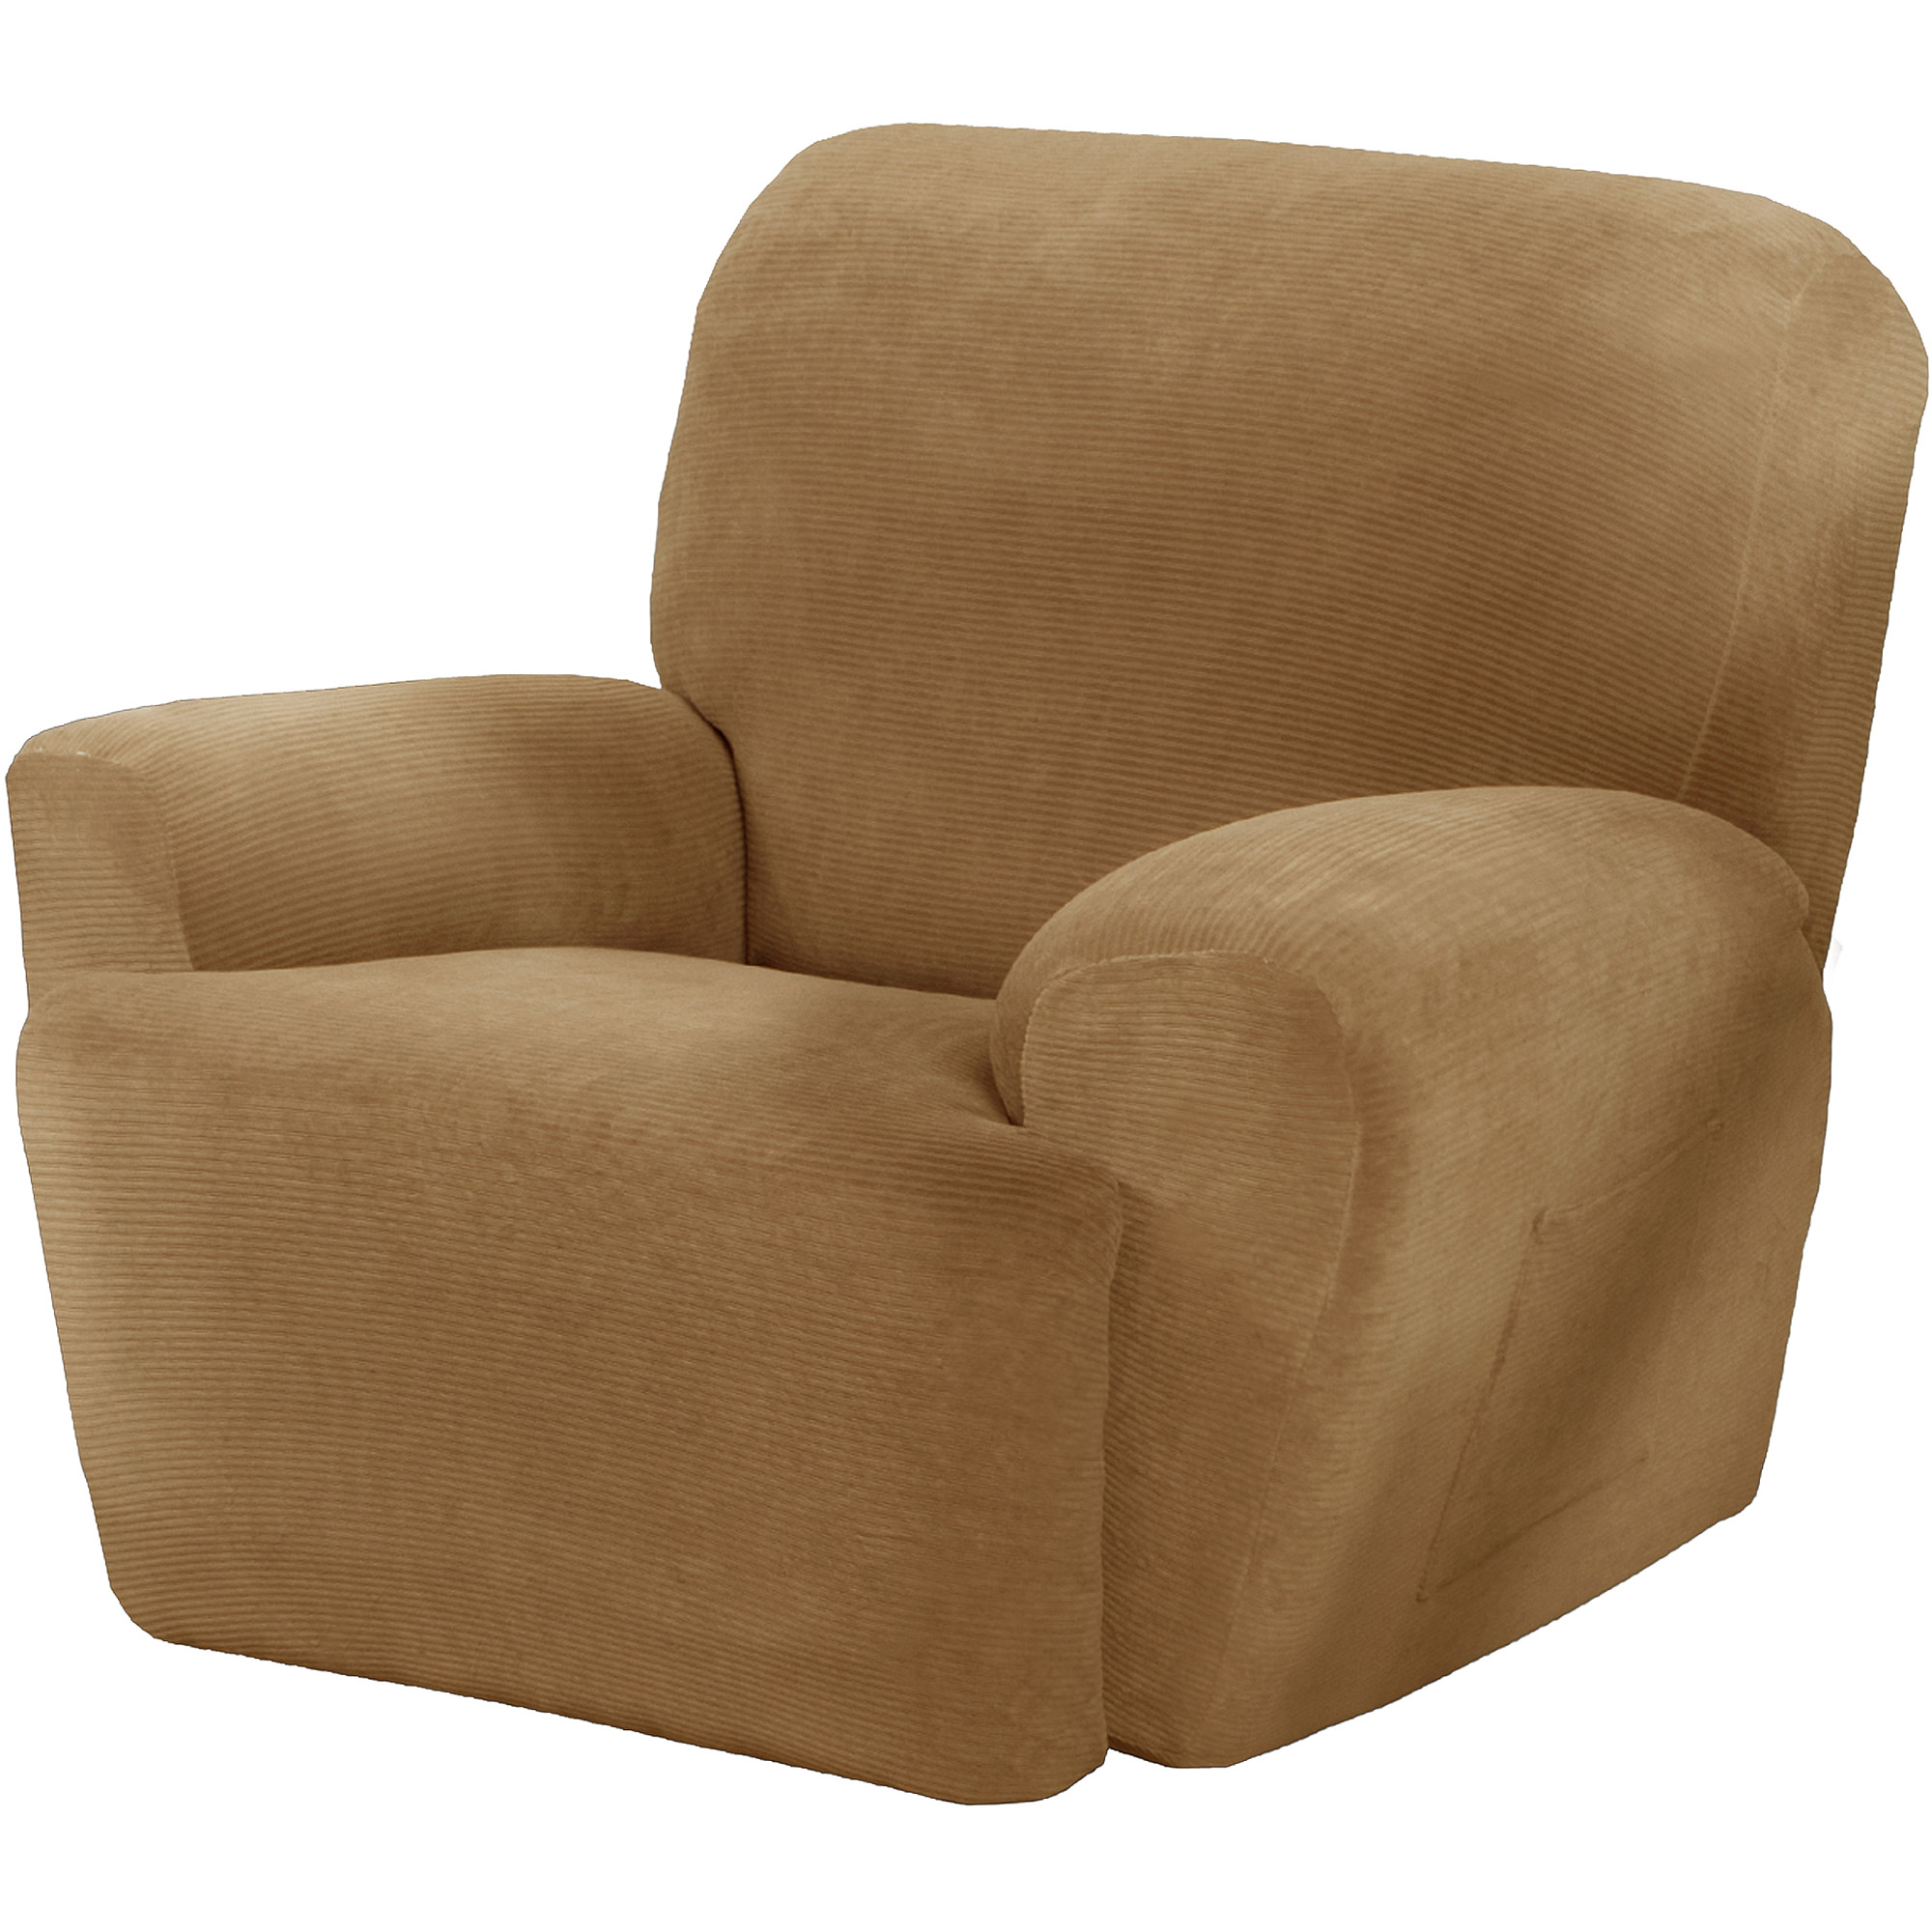 Maytex Collin Polyester/Spandex Recliner Slipcover